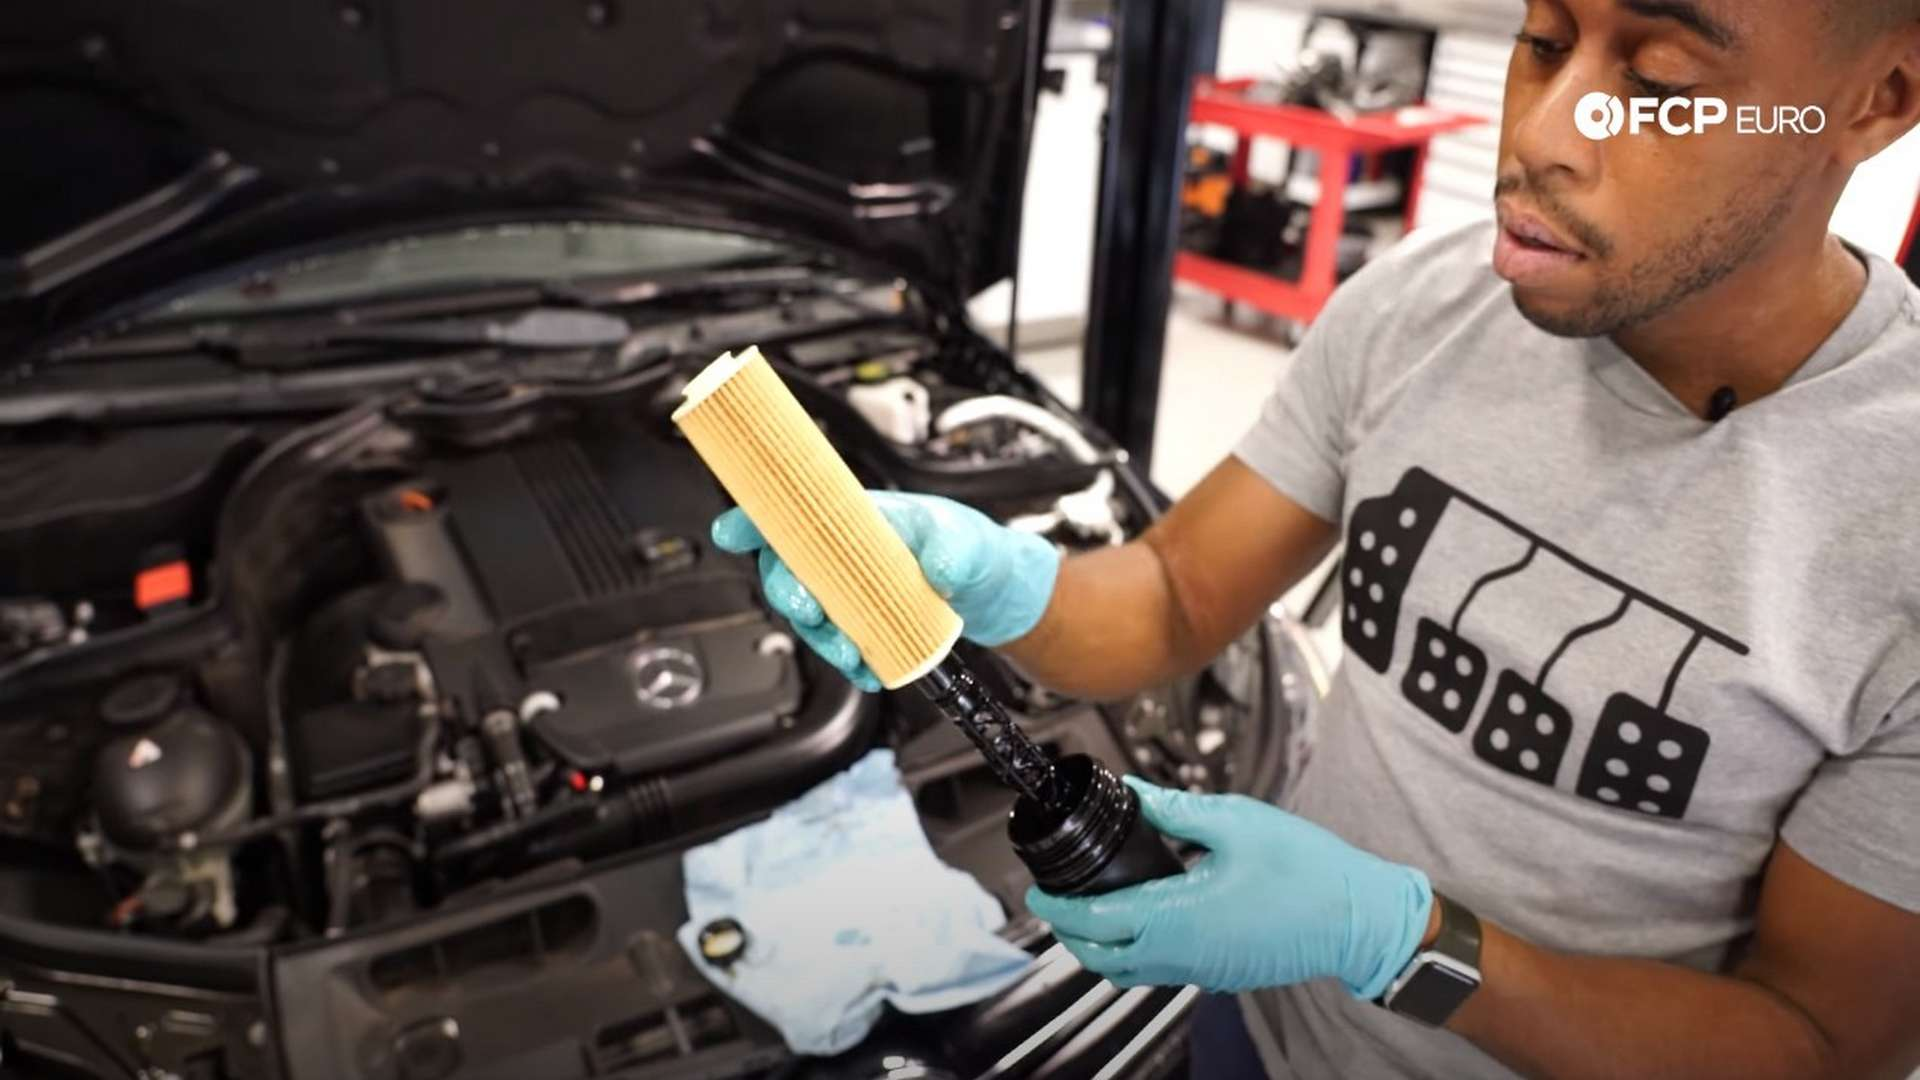 How To Change The Oil On A Mercedes-Benz C250 (M271 Engine)